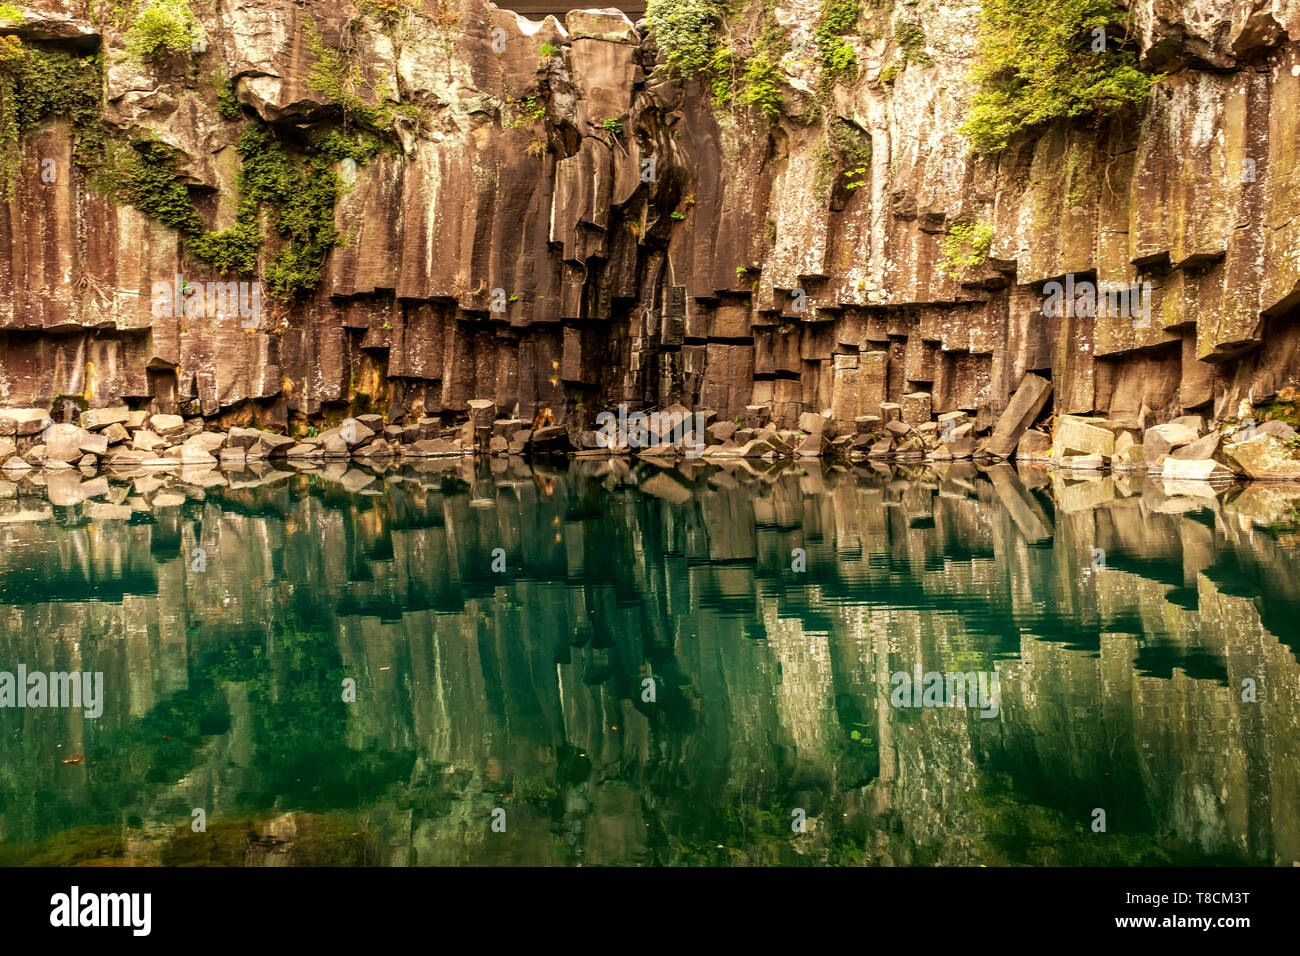 reflecrion in the water, Jeju, South Korea - Stock Image